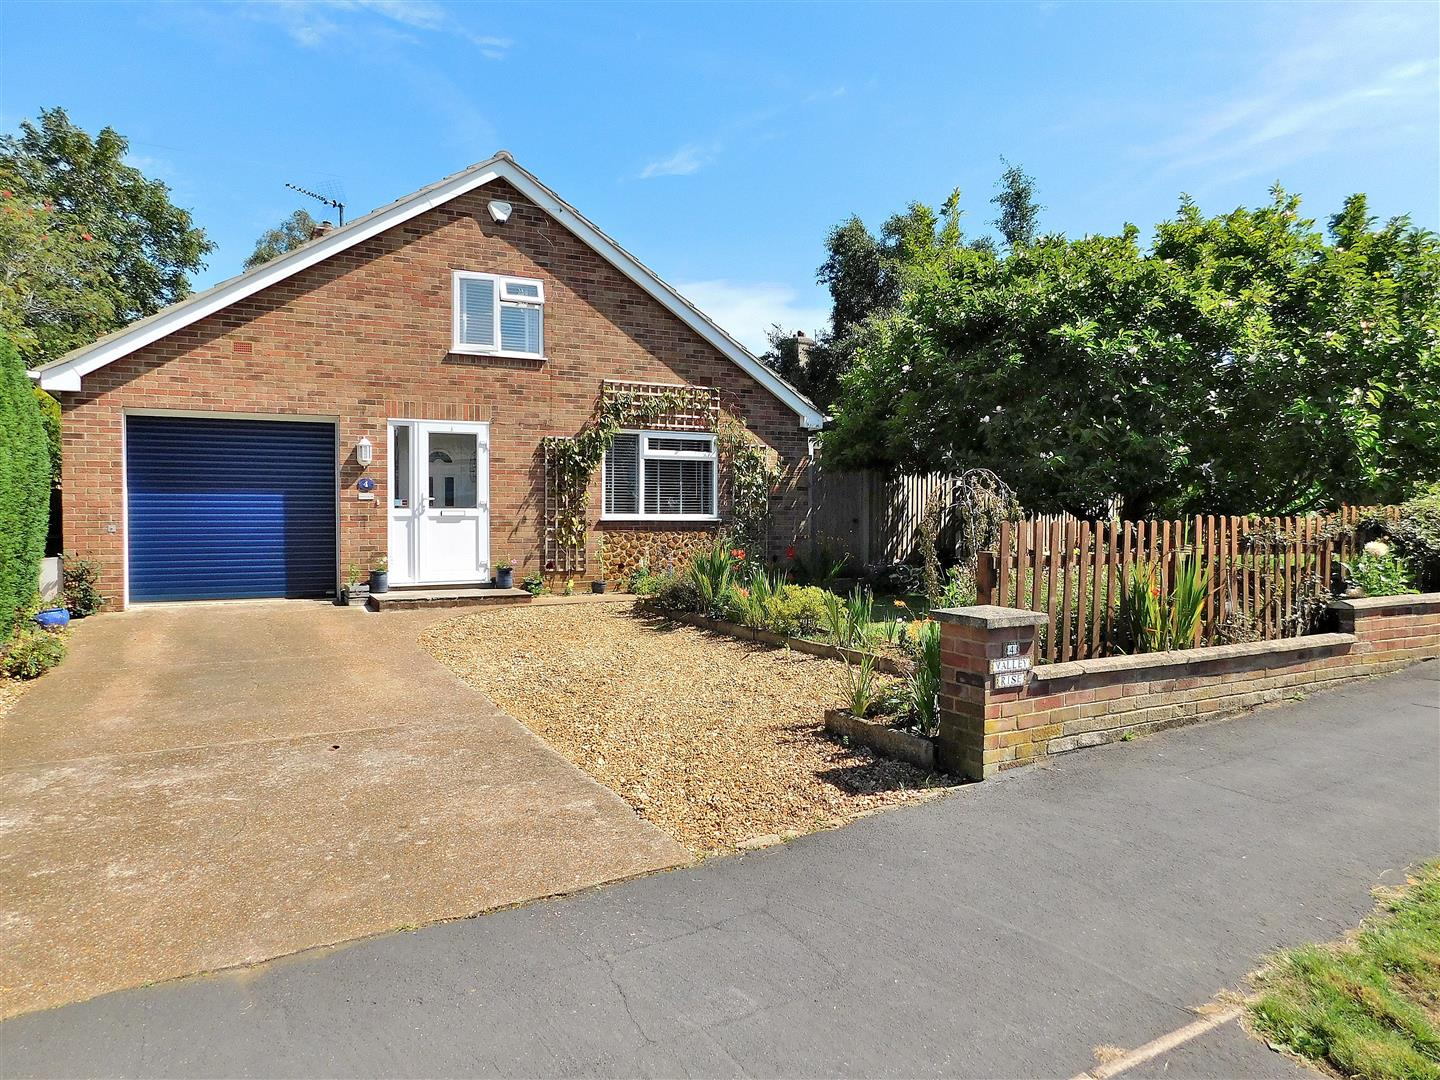 4 bed chalet for sale in King's Lynn, PE31 6PS 0